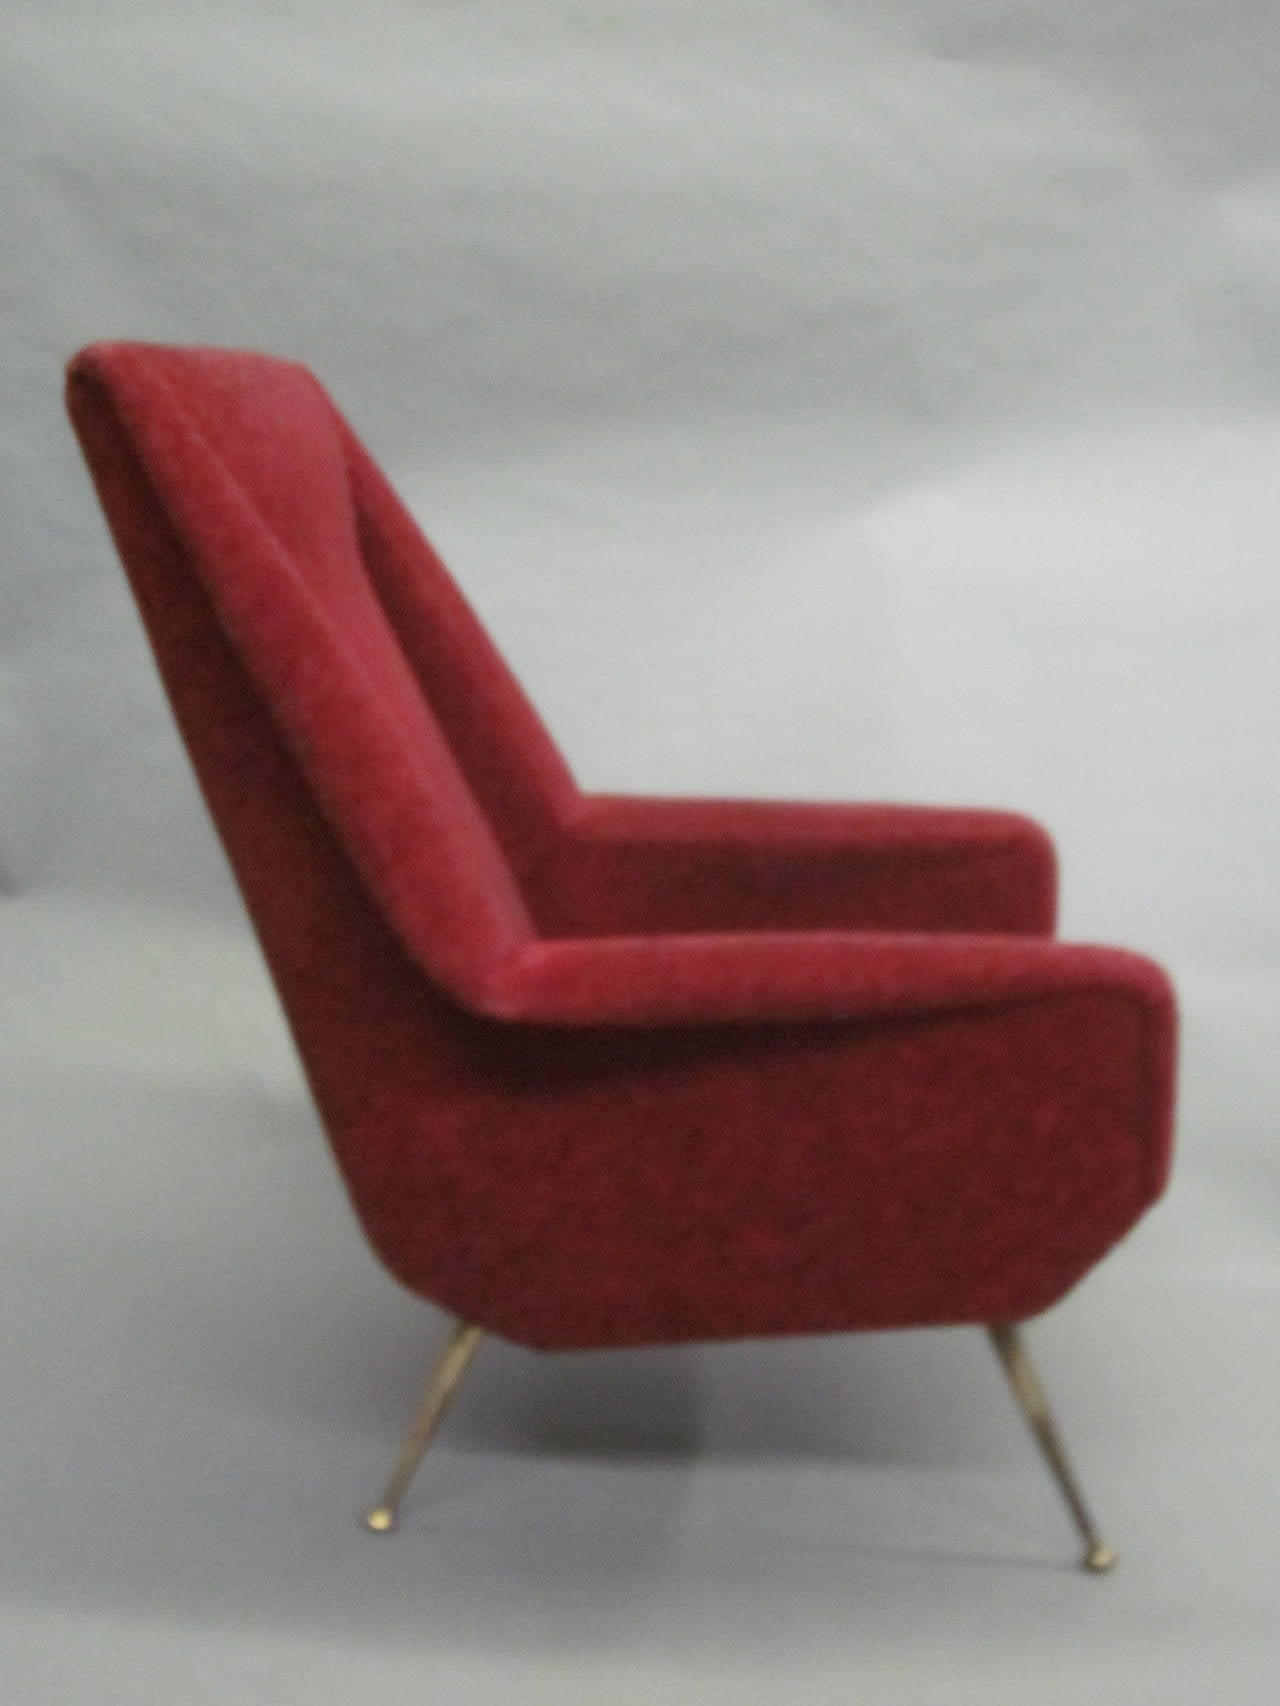 Pair of Italian Mid-Century Modern Lounge Chairs Attr. Gianfranco Frattini, 1950 8